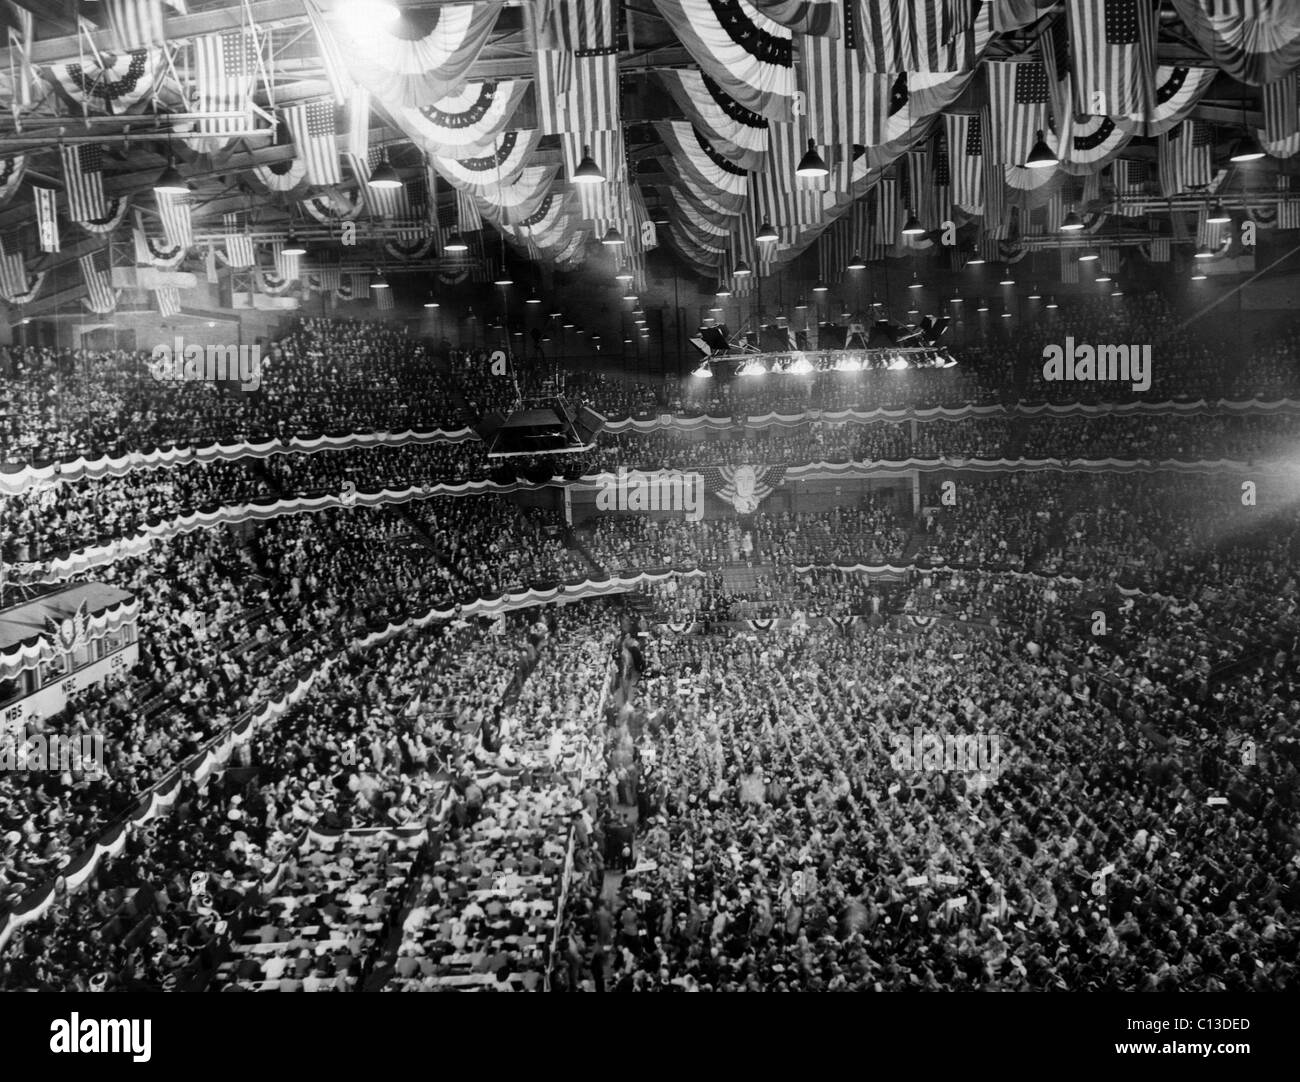 US Elections. The Democratic National Convention in Chicago, Illinois, July, 1940. - Stock Image